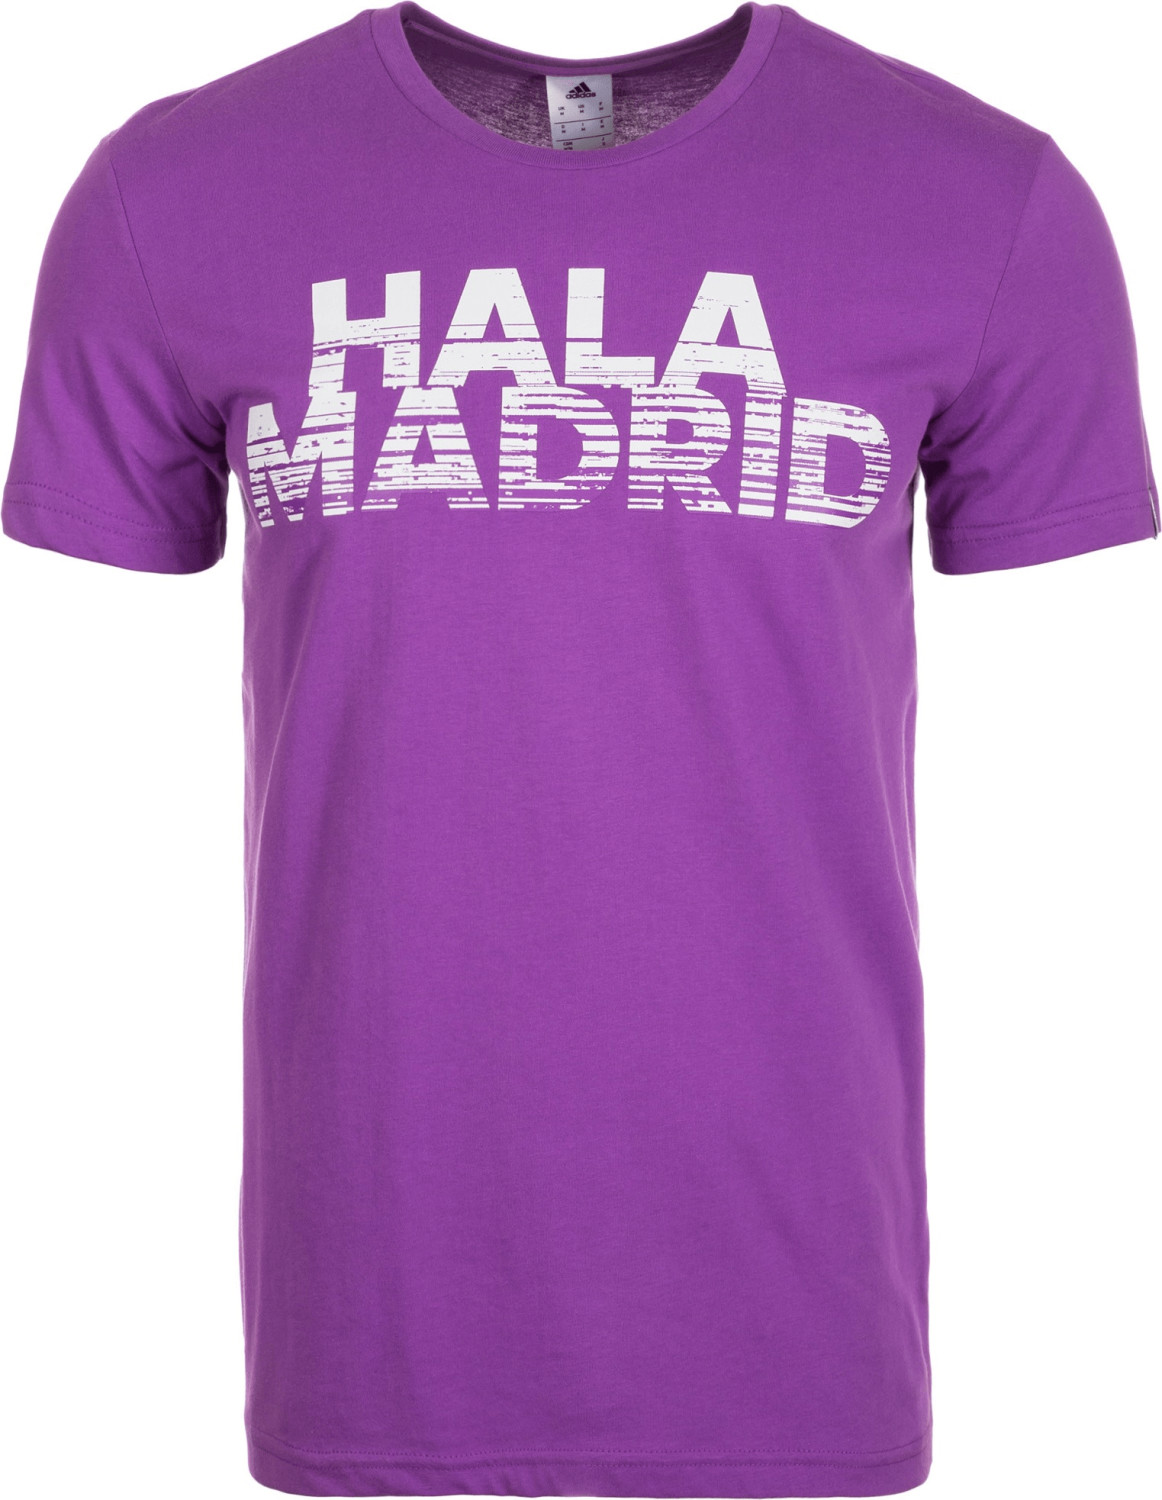 Adidas Real Madrid T-Shirt Hala Madrid Grafik lila